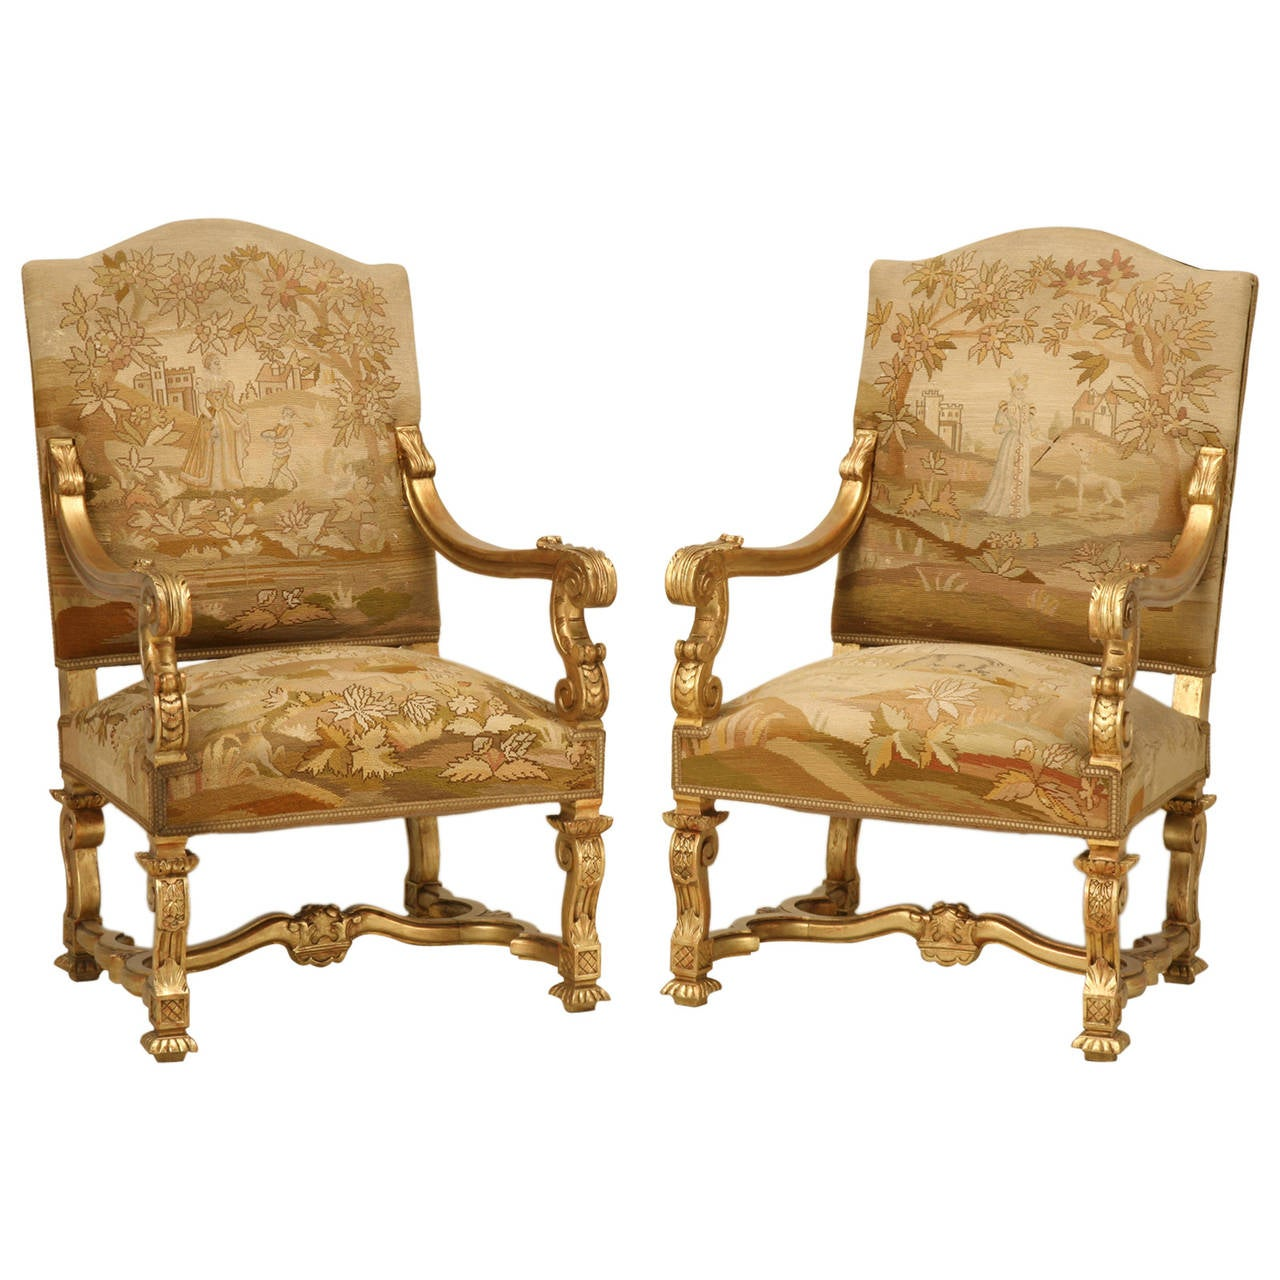 Inexpensive Antique Furniture: Antique French Gilded Throne Chairs, Circa 1900 At 1stdibs